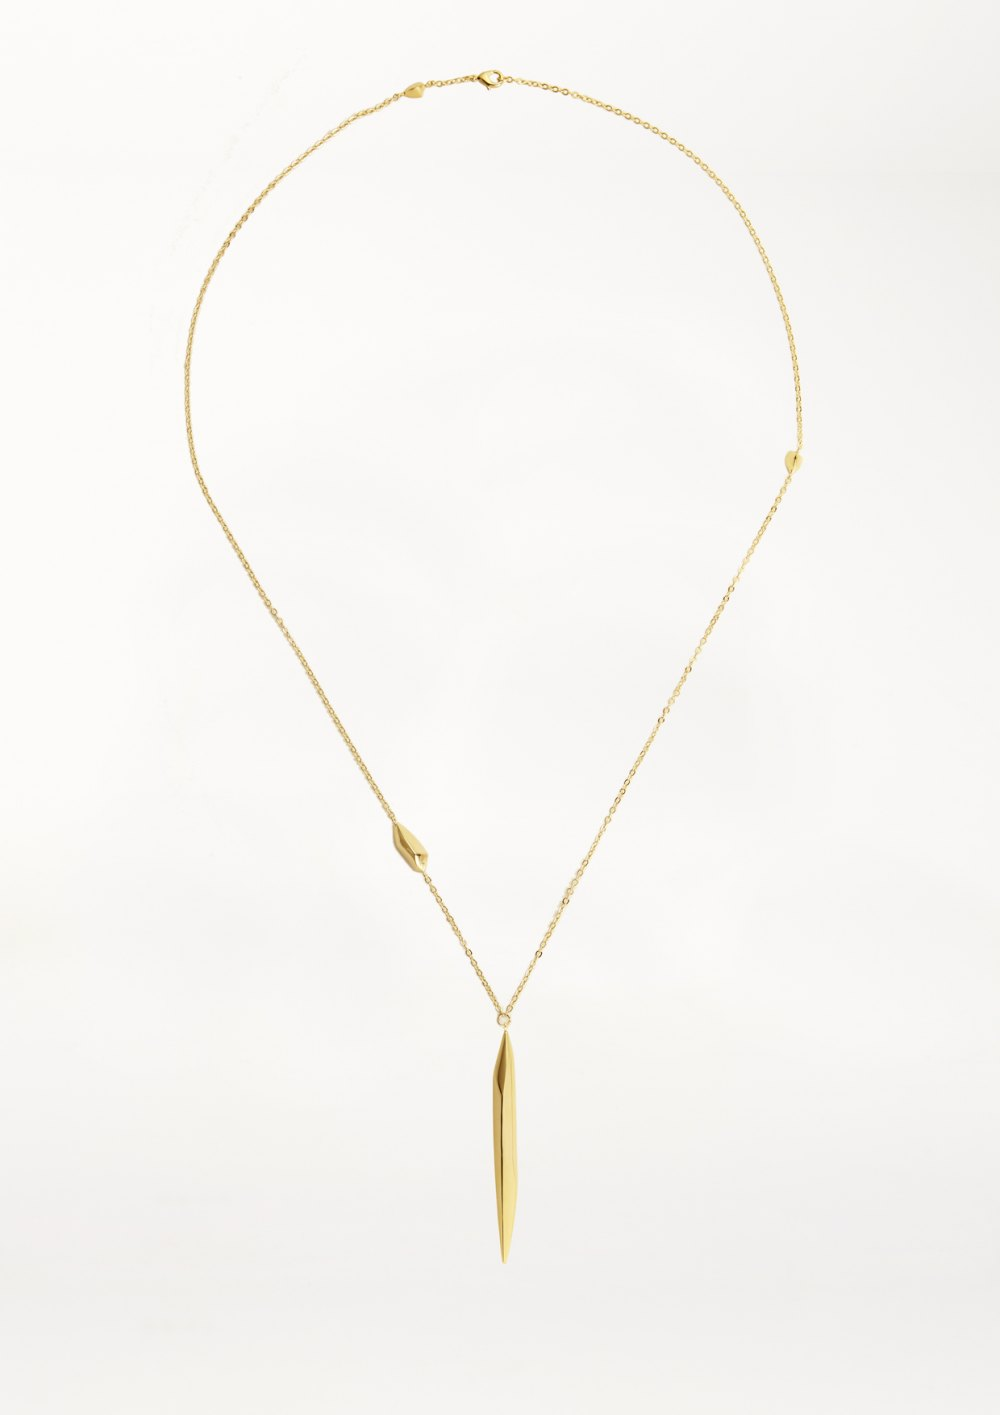 WASHED STONE COLLECTION XENIA BOUSStar Dust Necklace long Pendant Necklace in gold silver with sculptural pendant  elegant chain